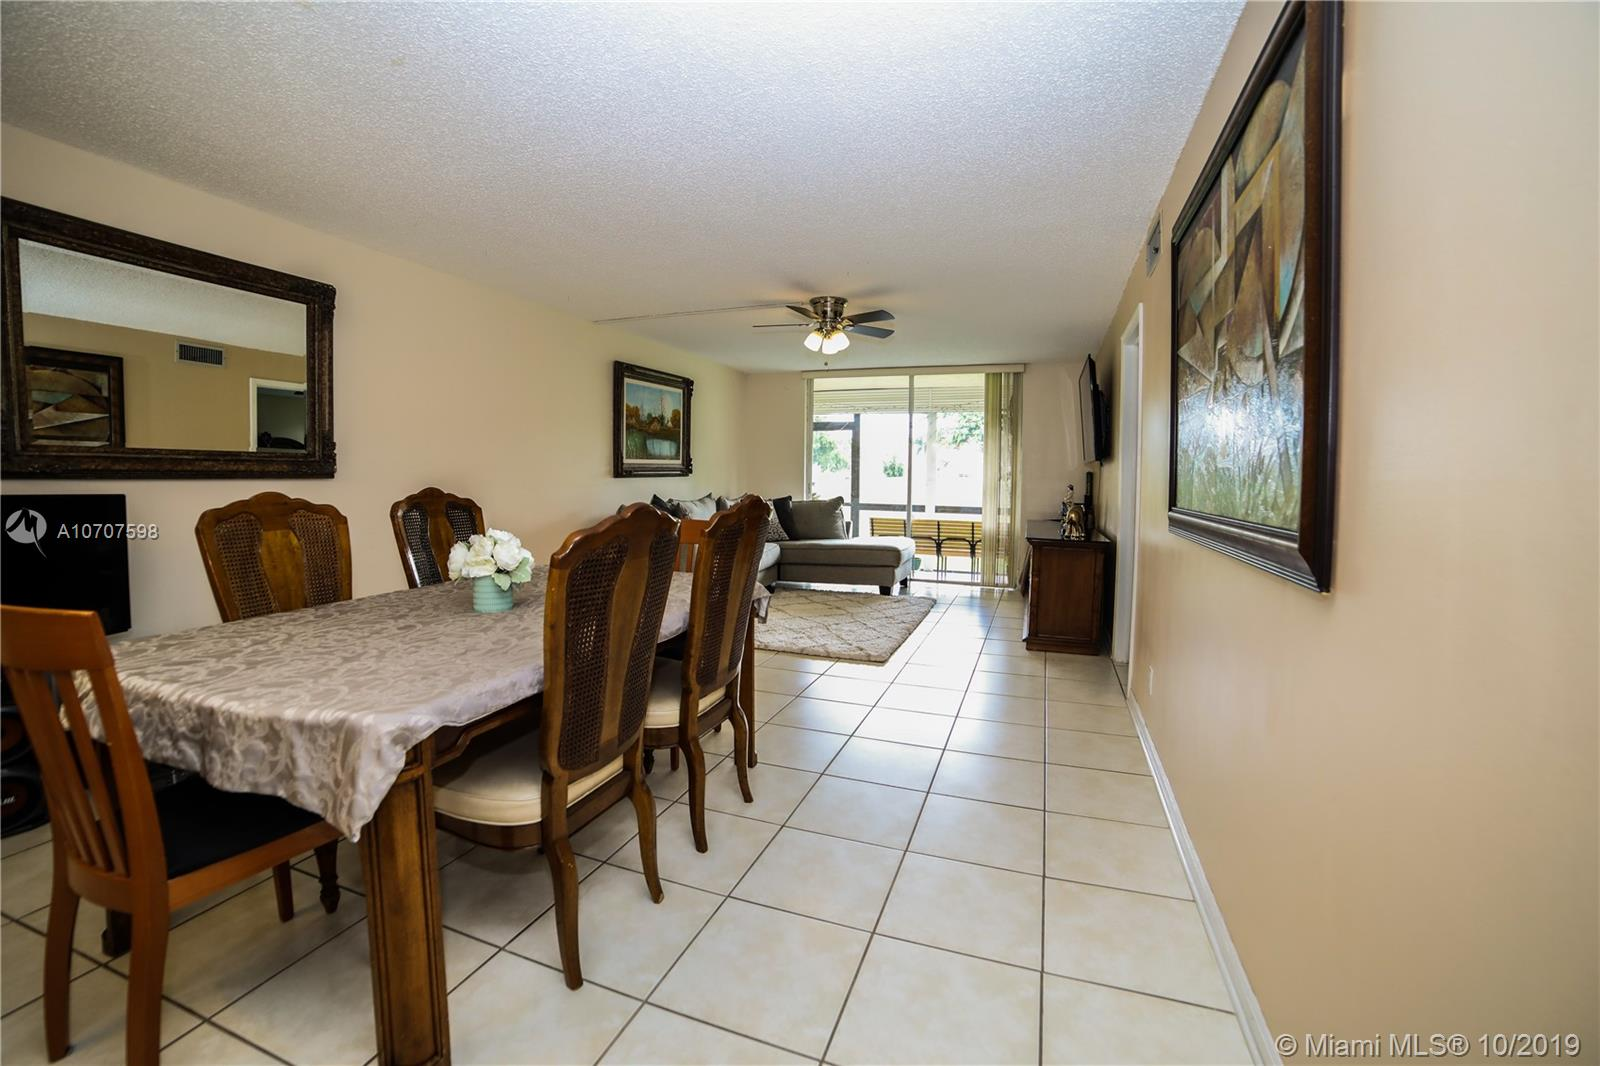 8980 S Hollybrook Blvd #103 For Sale A10707598, FL